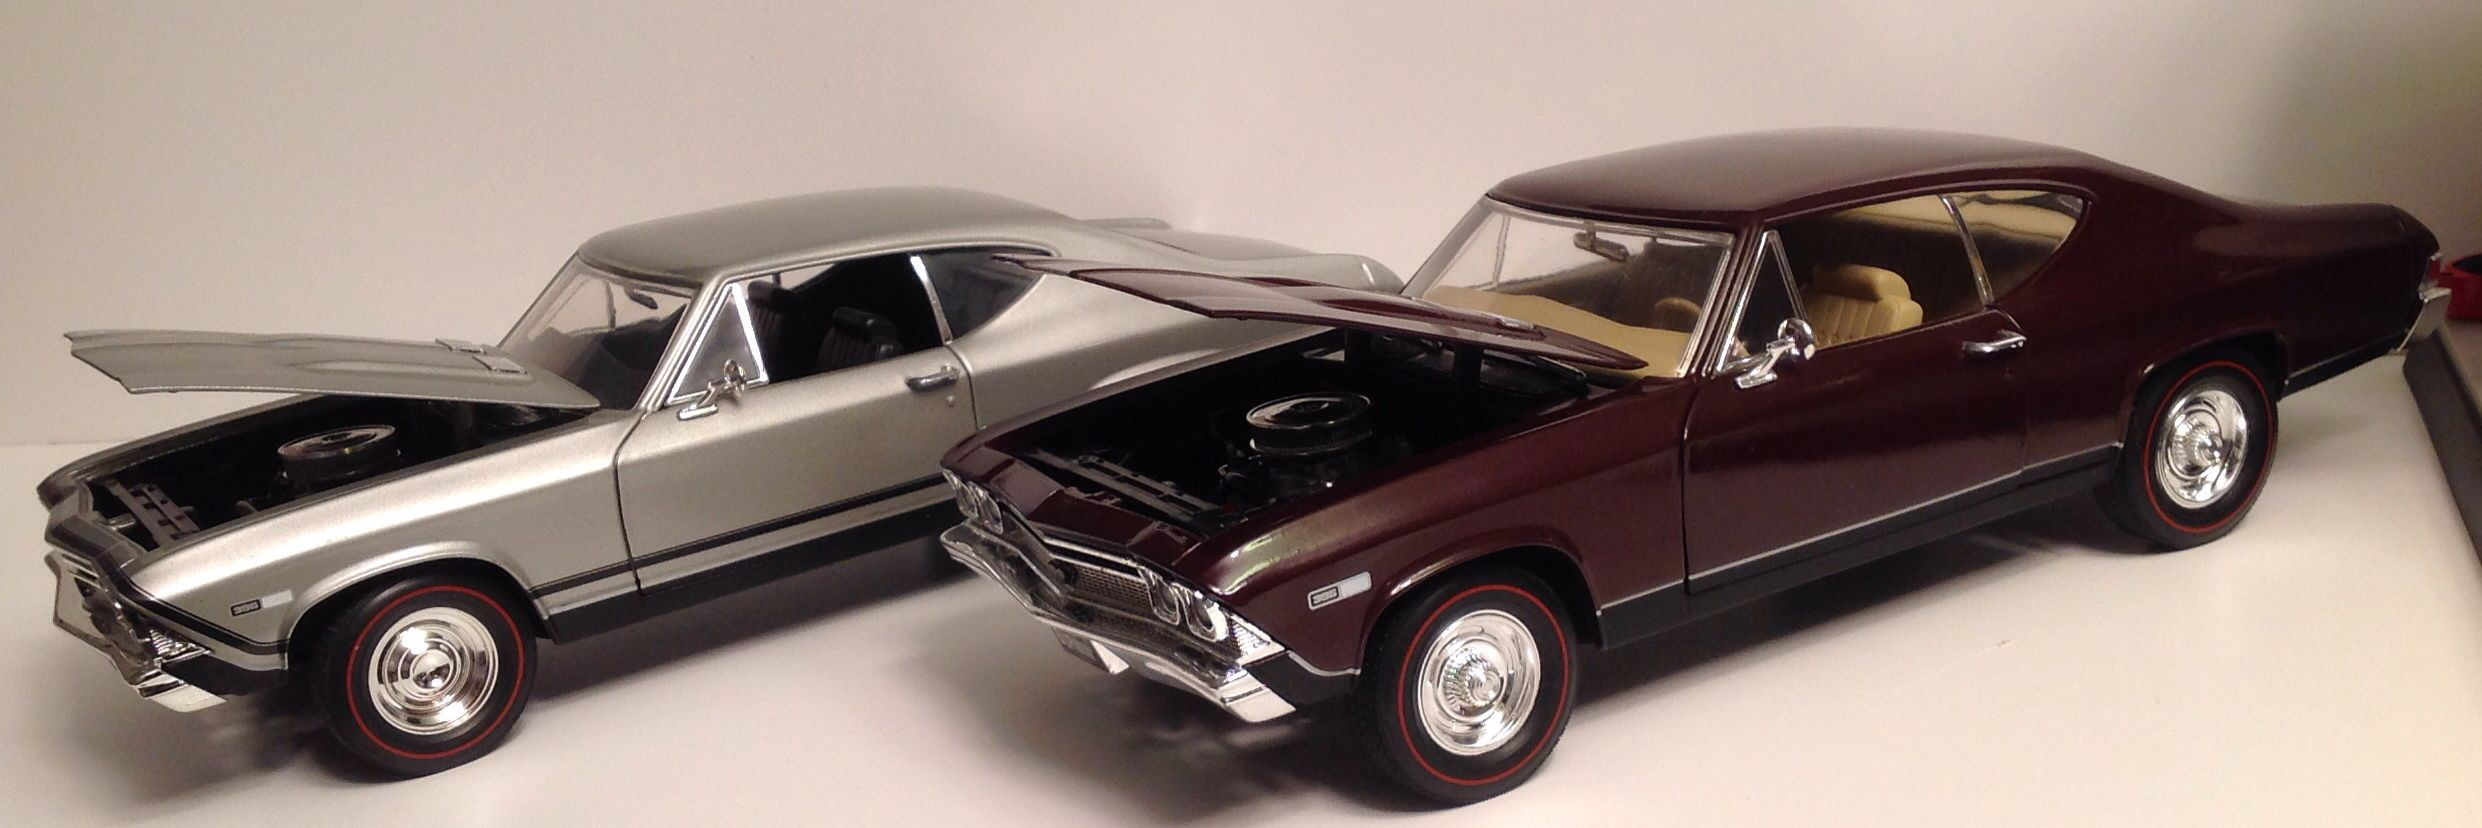 ERTL American Muscle, 1968 Chevelle SS396, 1/18 diecast